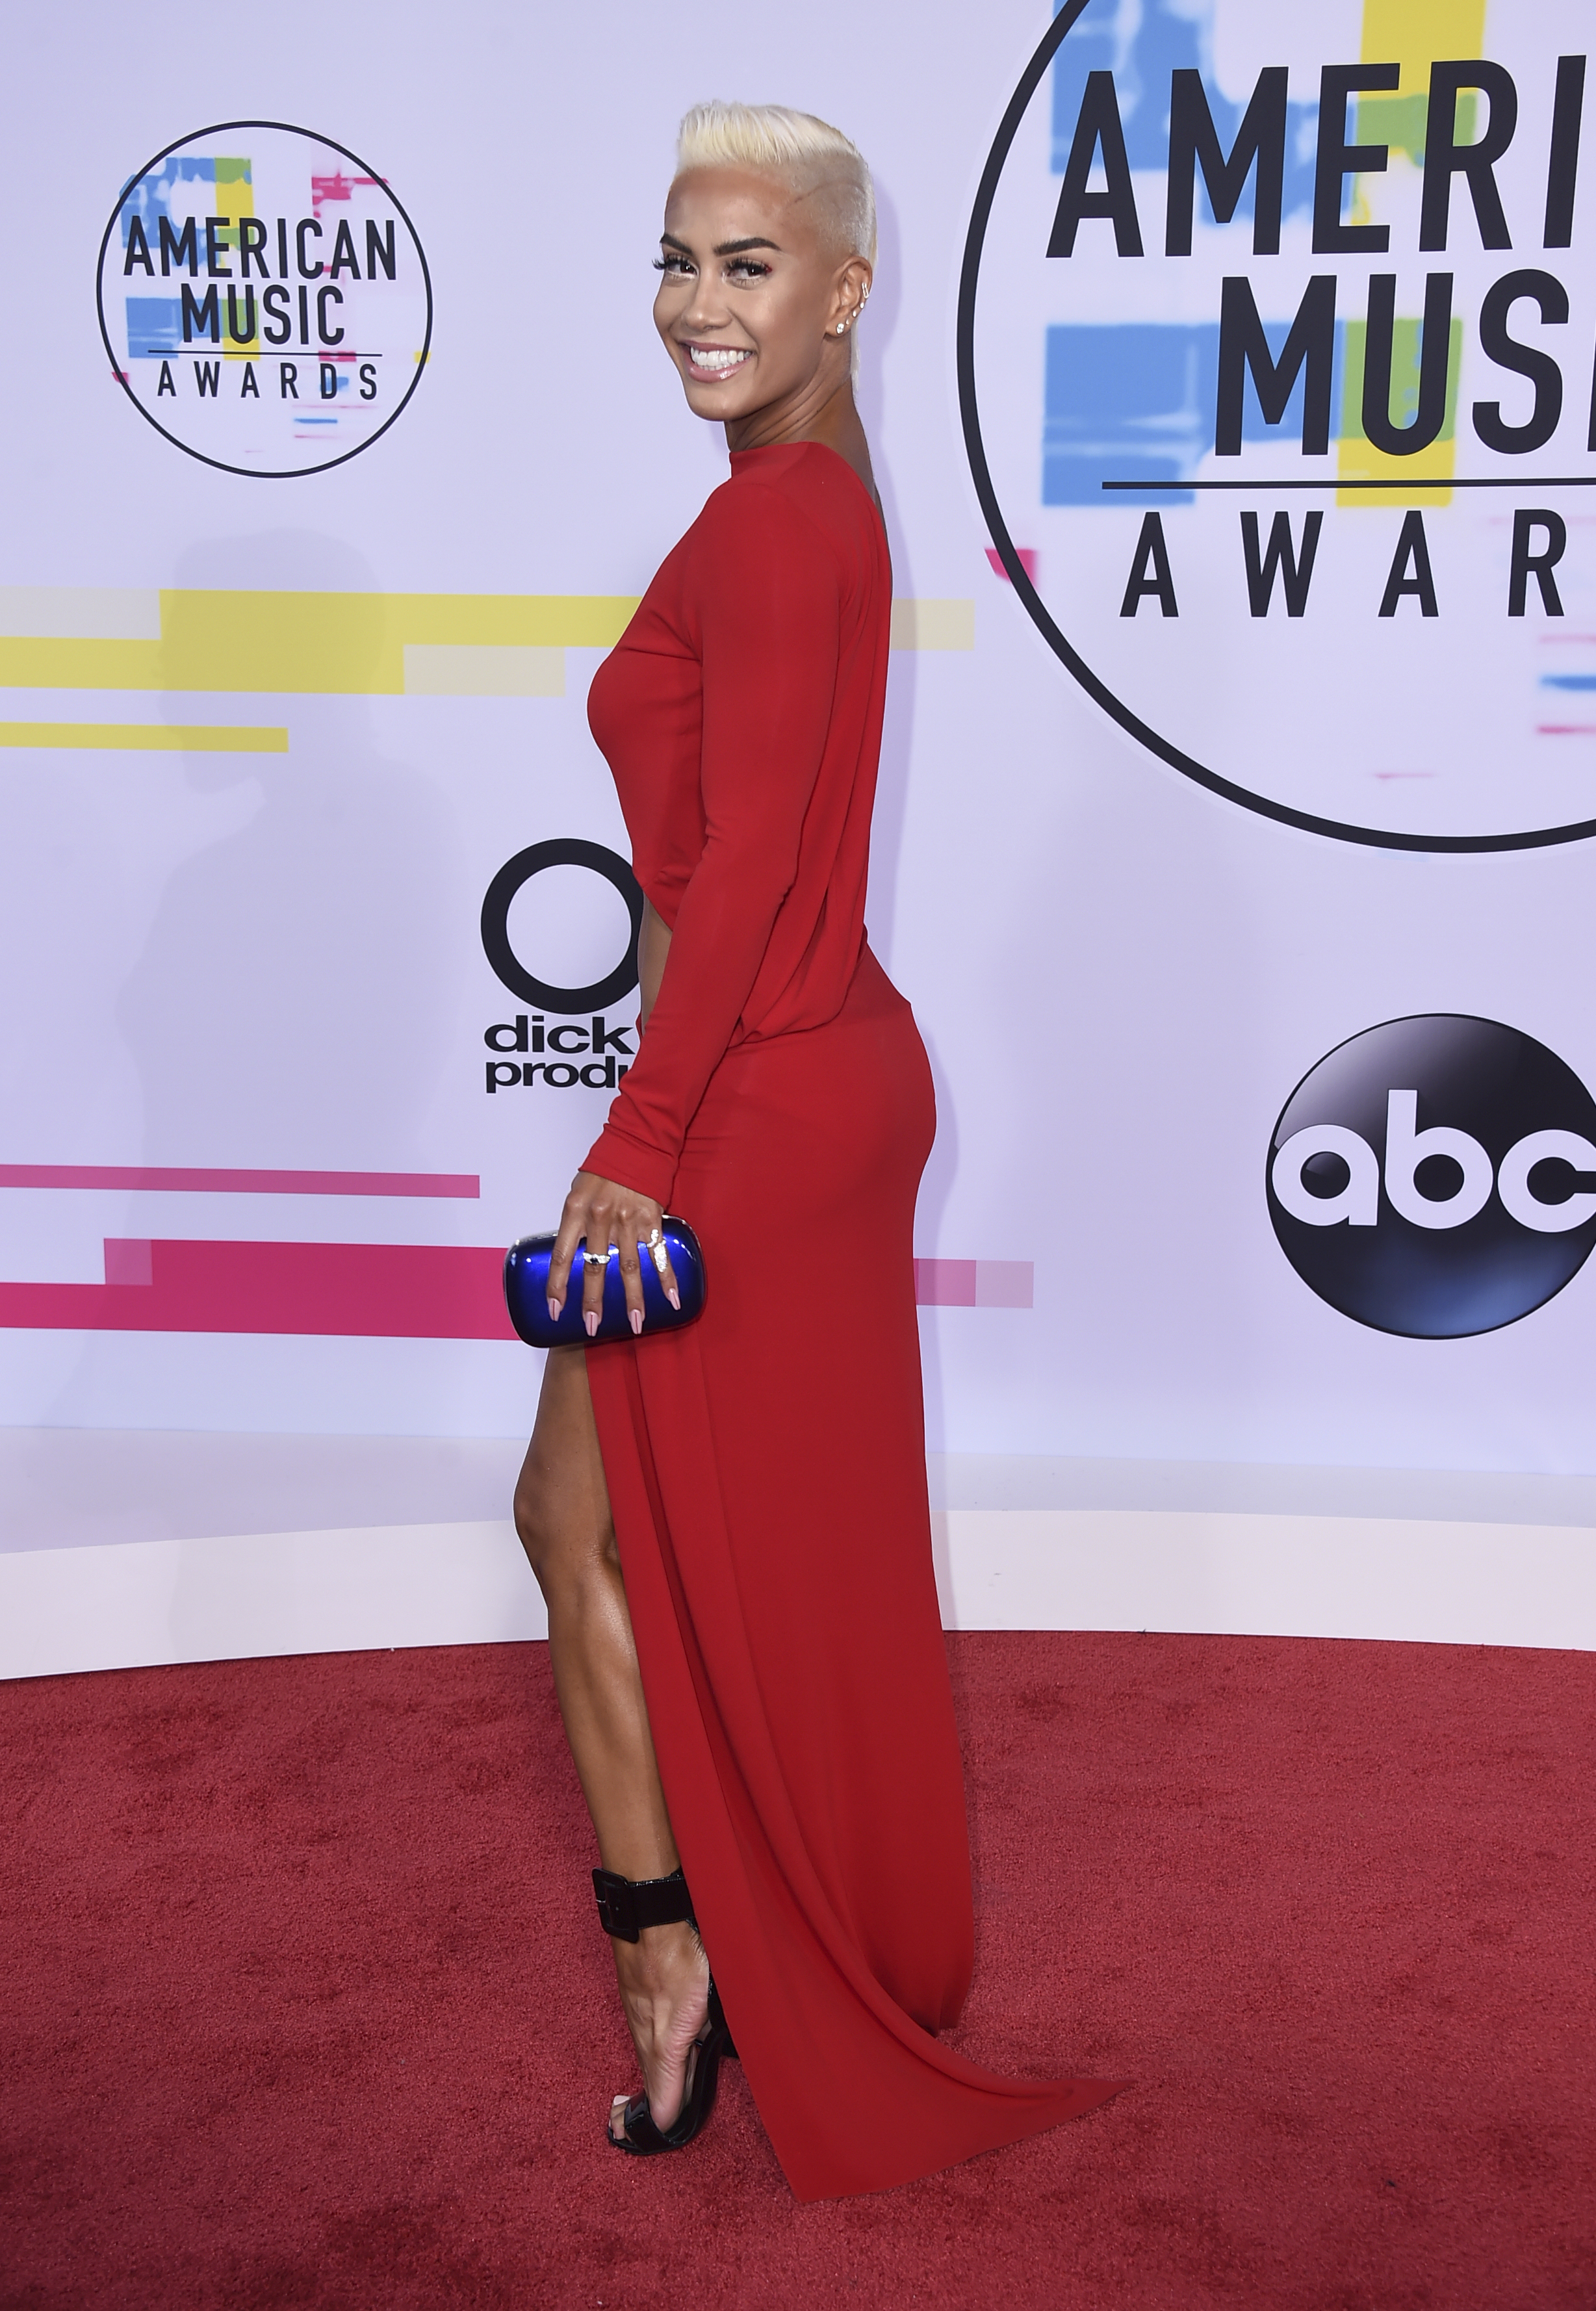 <div class='meta'><div class='origin-logo' data-origin='none'></div><span class='caption-text' data-credit='Jordan Strauss/Invision/AP'>Sibley Scoles arrives at the American Music Awards at the Microsoft Theater on Sunday, Nov. 19, 2017, in Los Angeles. (Photo by Jordan Strauss/Invision/AP)</span></div>